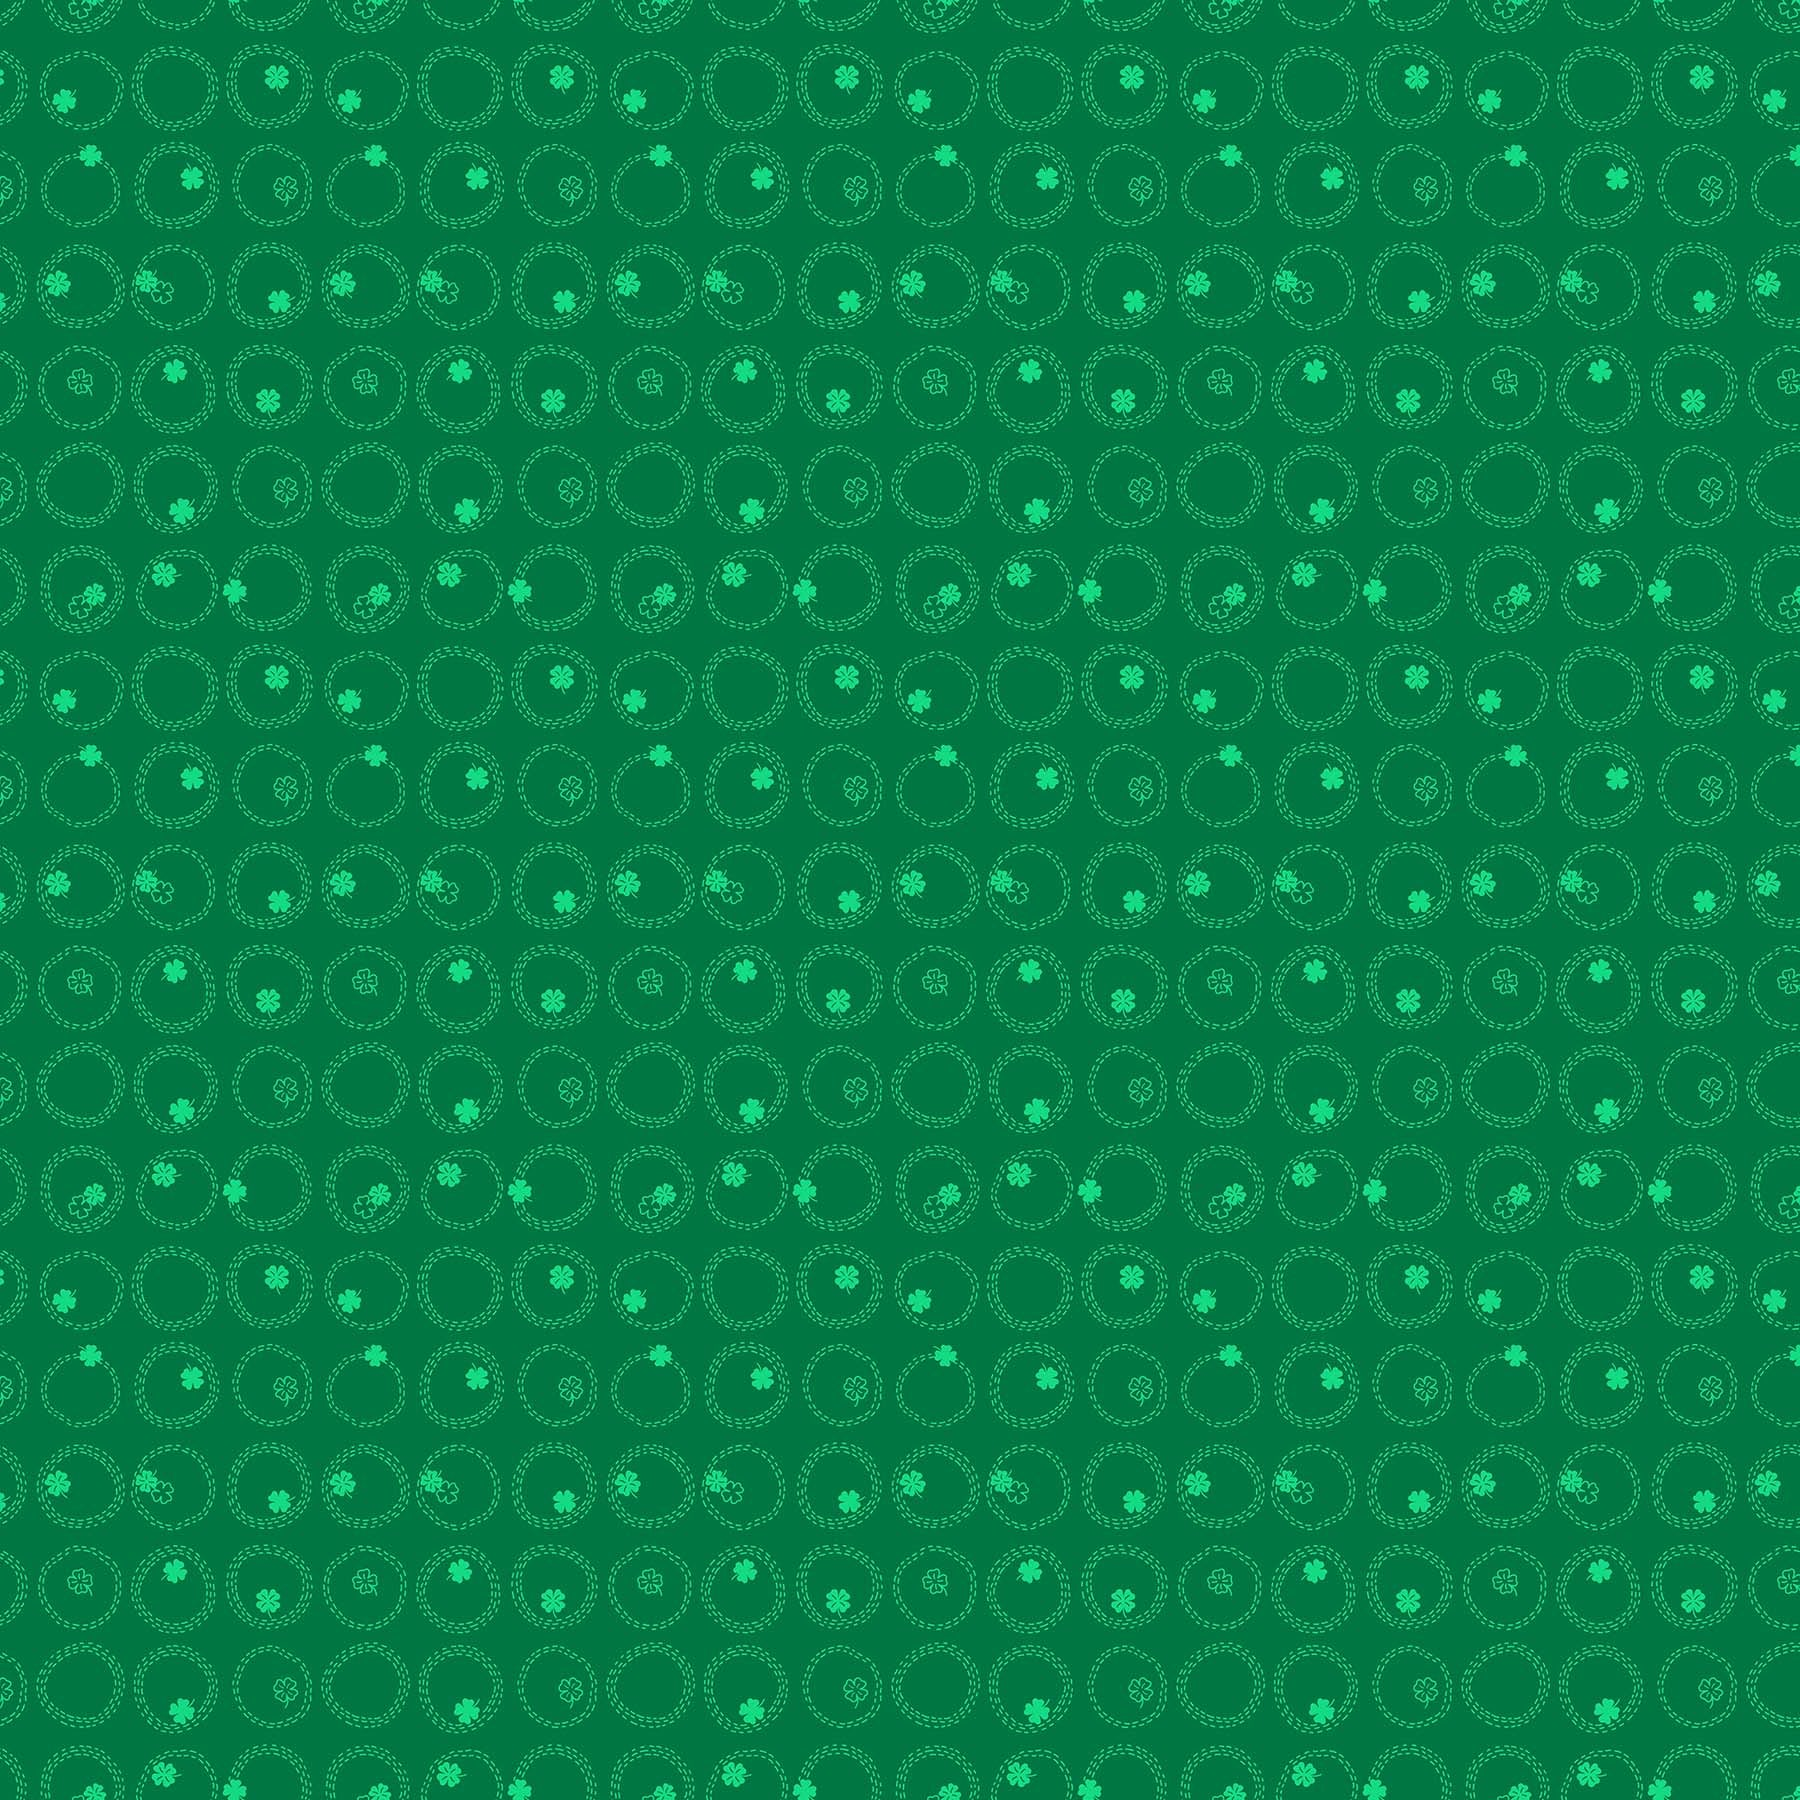 Lucky Charms - Clovers Fabric - Trapunto